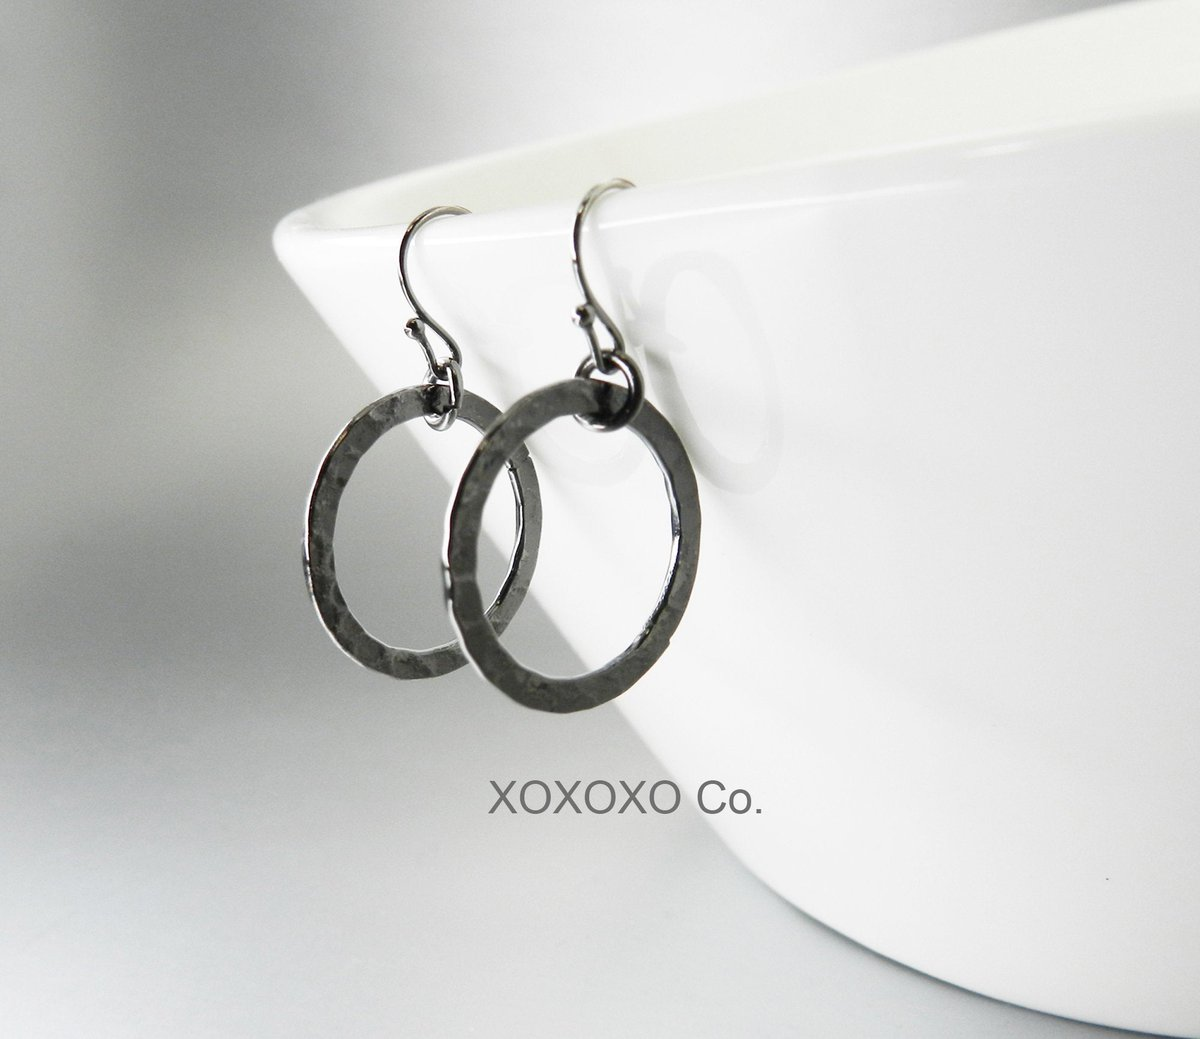 Black Hoop Earrings Gunmetal Hammered Metal Hoops Circle Drops  #handmadejewelry #Etsy #jewelryblogger #handmade #christmasgifts #giftsforher #shopsmall #style #fashion